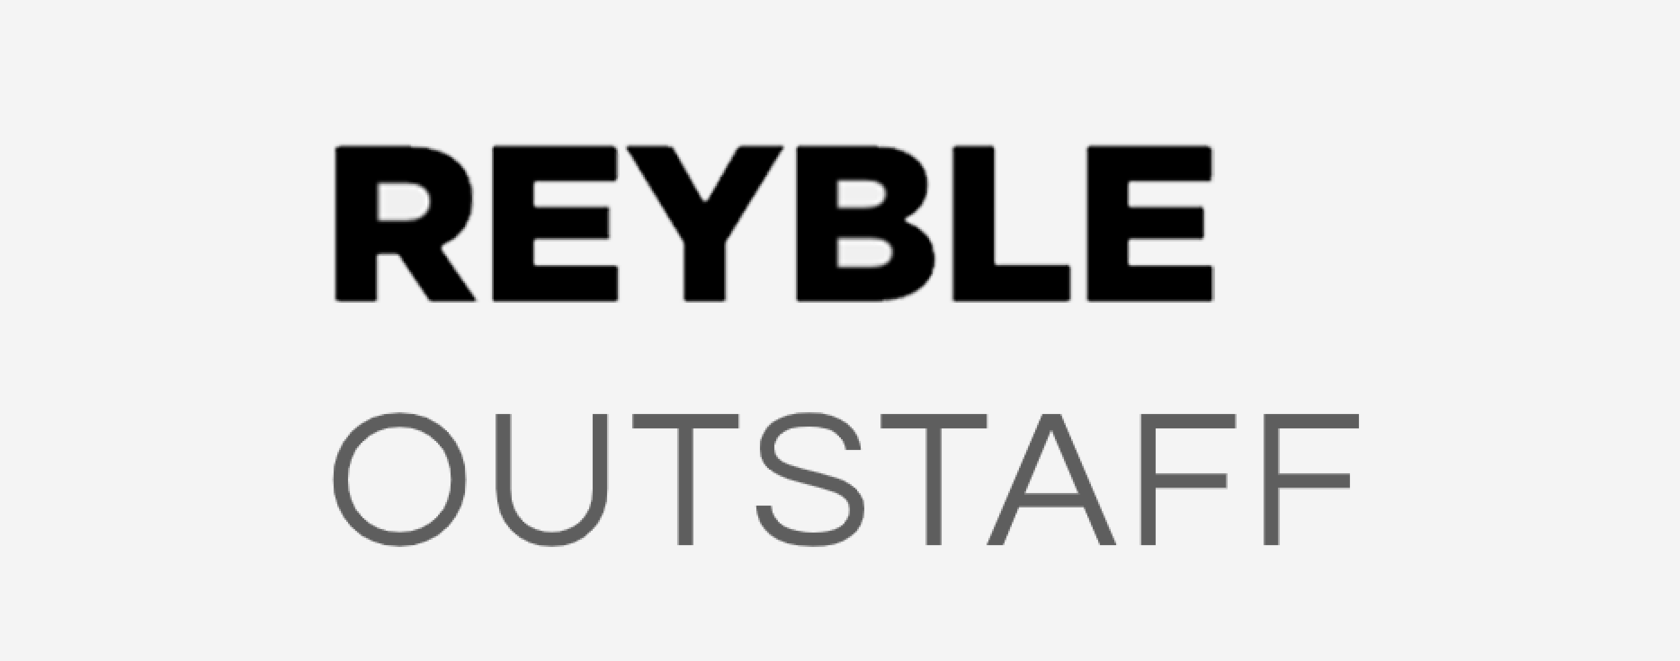 REYBLE